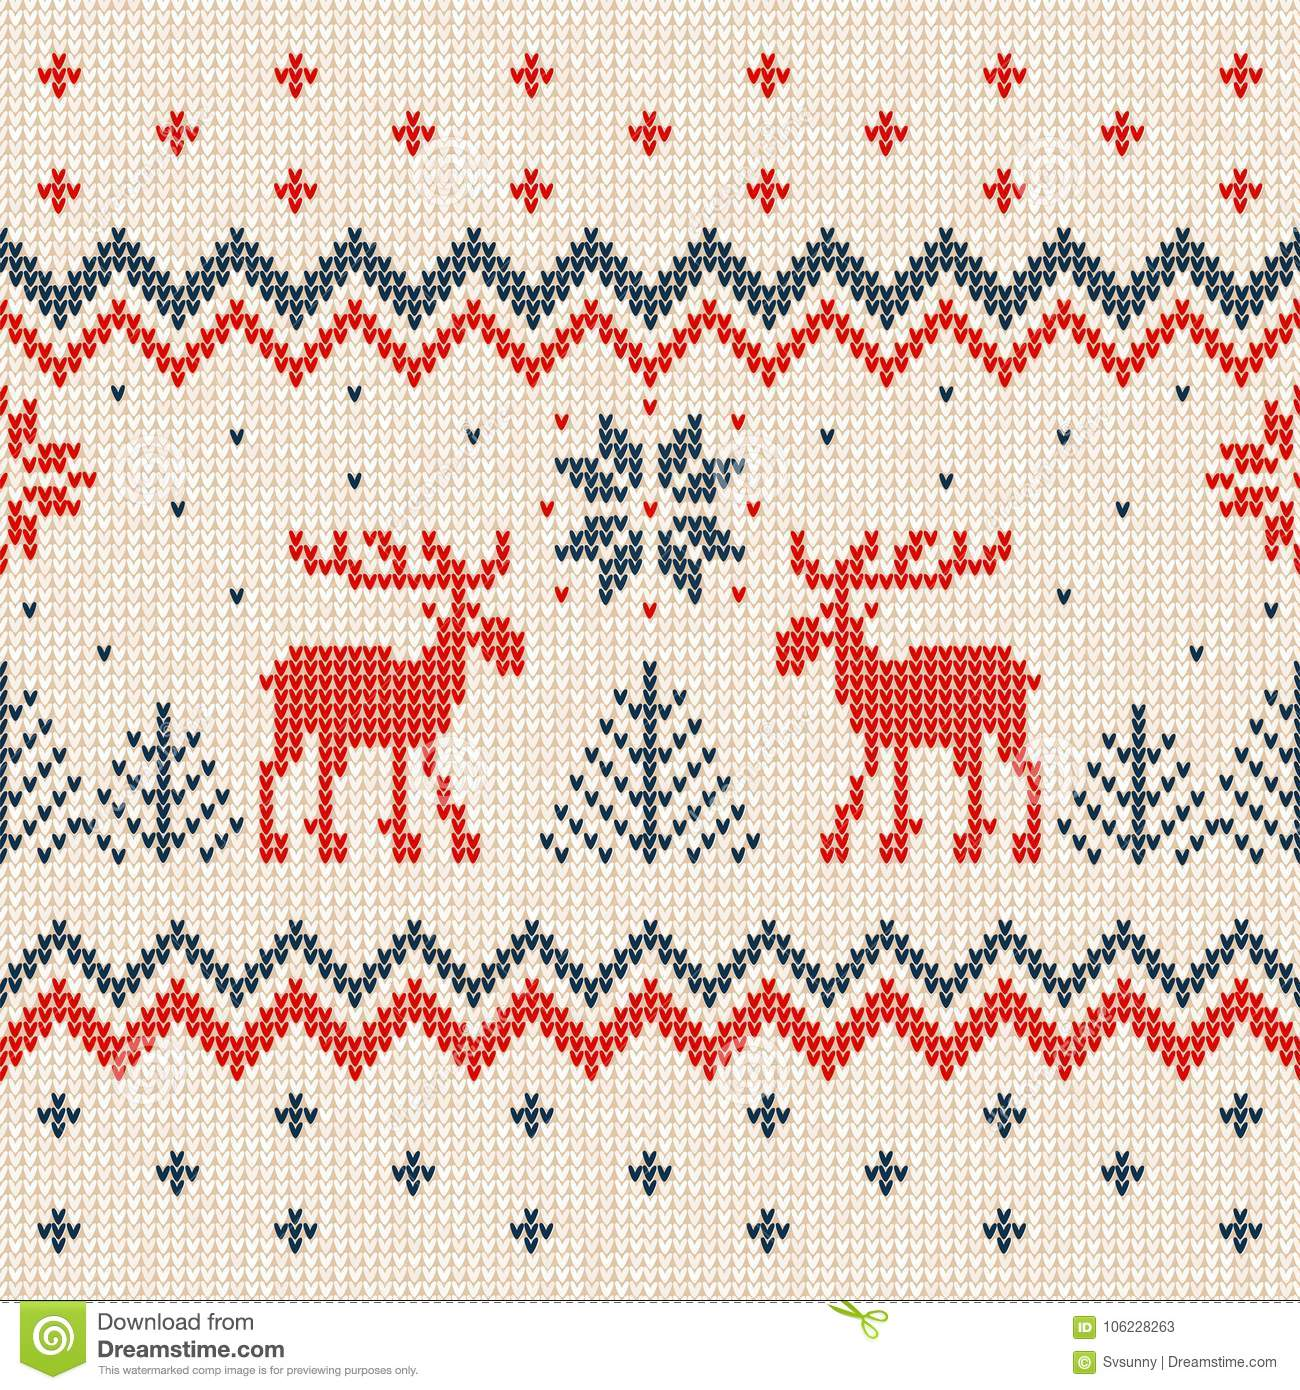 ugly sweater merry christmas and happy new year greeting card frame border template vector illustration seamless knitted background pattern deers